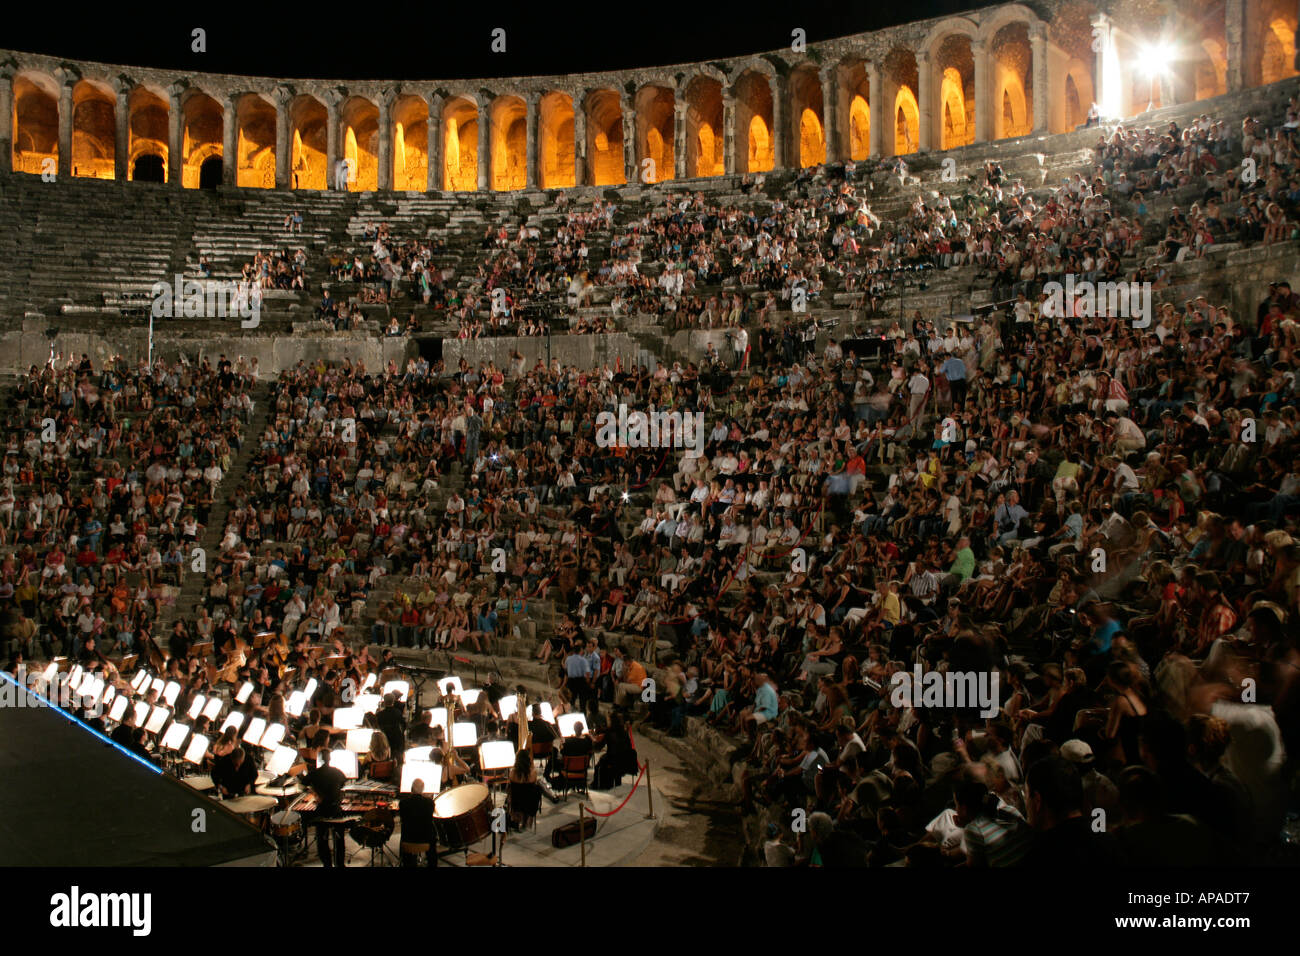 AUDIENCE AT THE ASPENDOS THEATRE, TURKEY - Stock Image